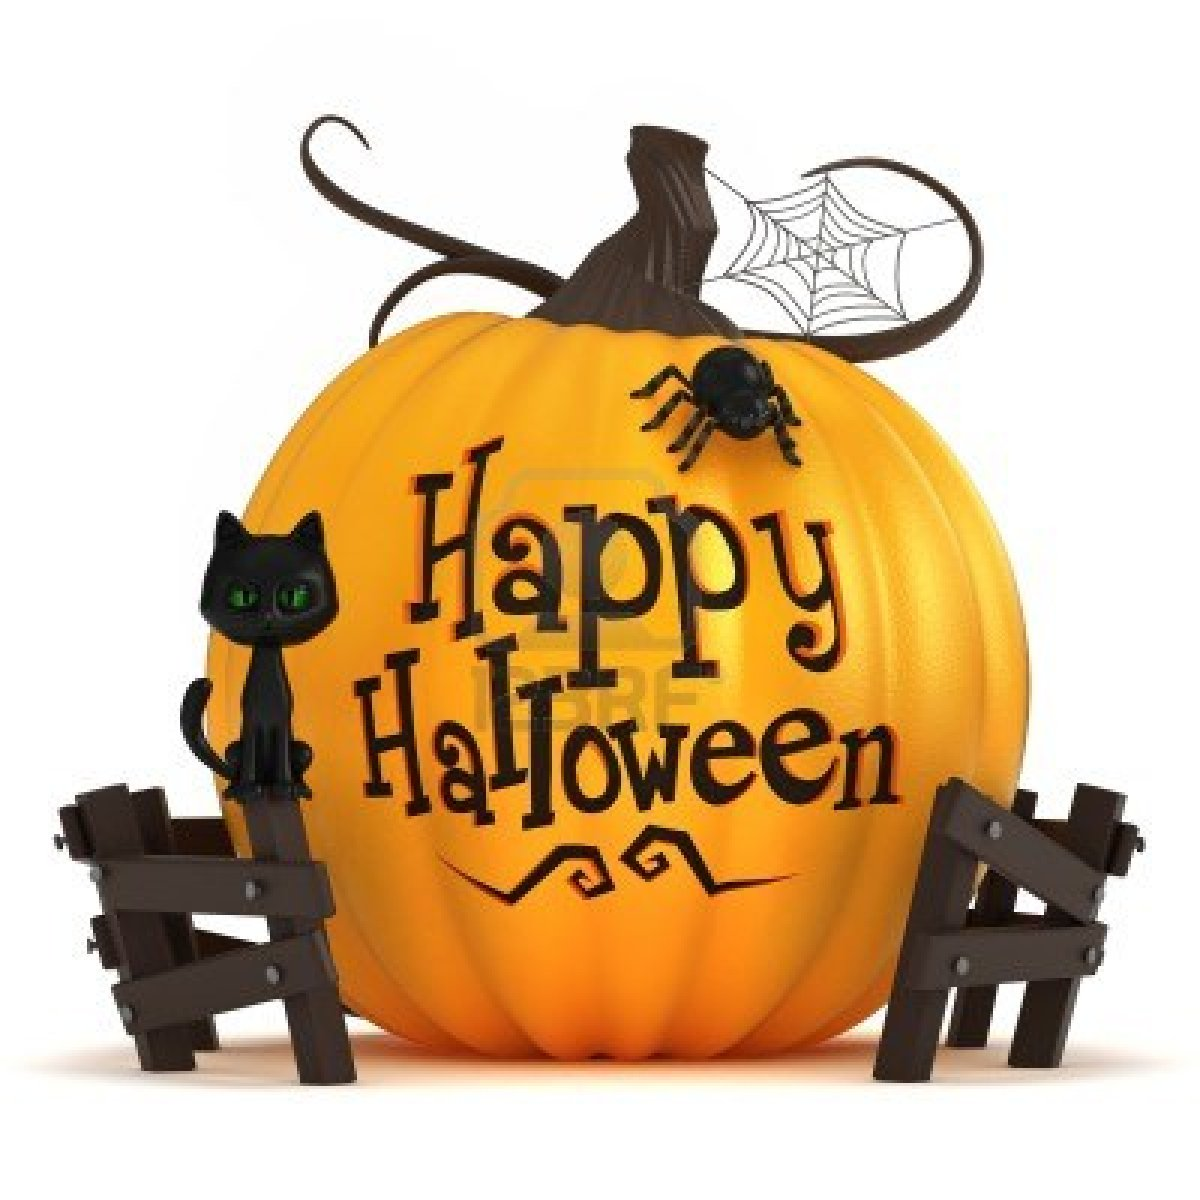 Halloween halloween photo 35969905 fanpop - Imagenes de halloween ...